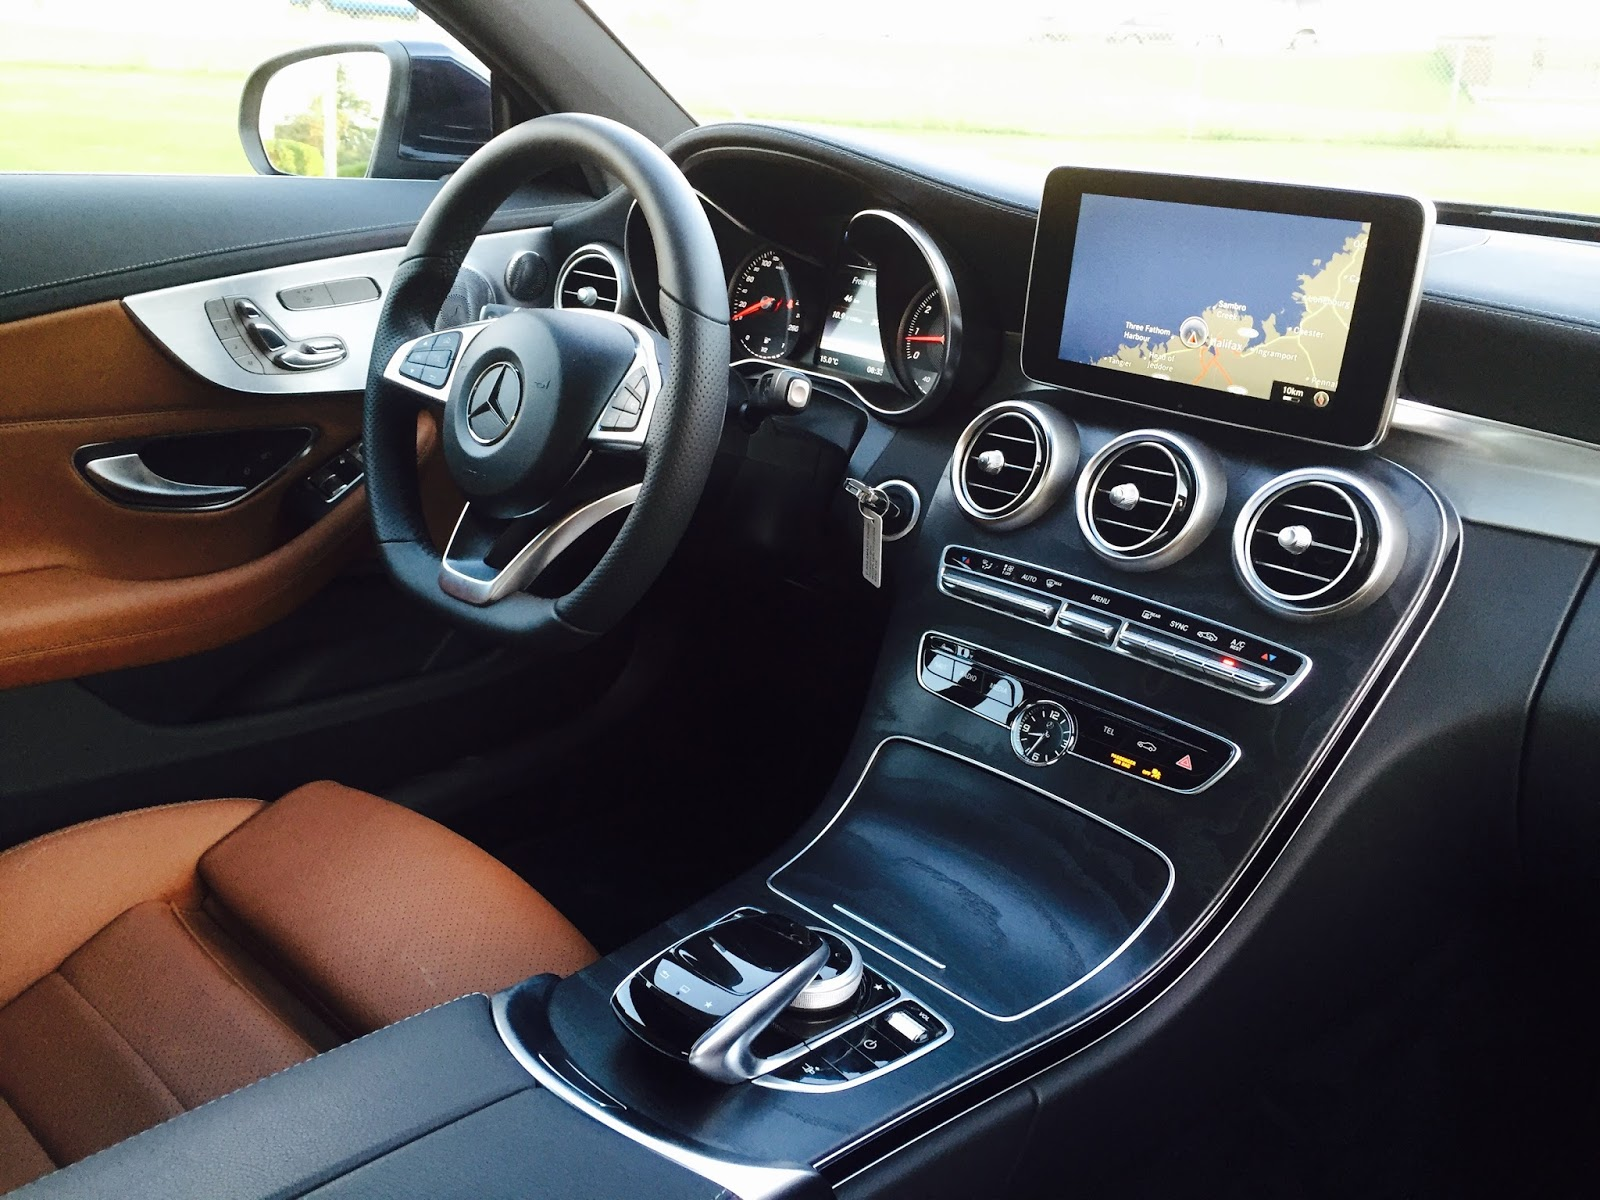 2017 mercedes benz c300 coupe interior [ 1600 x 1200 Pixel ]